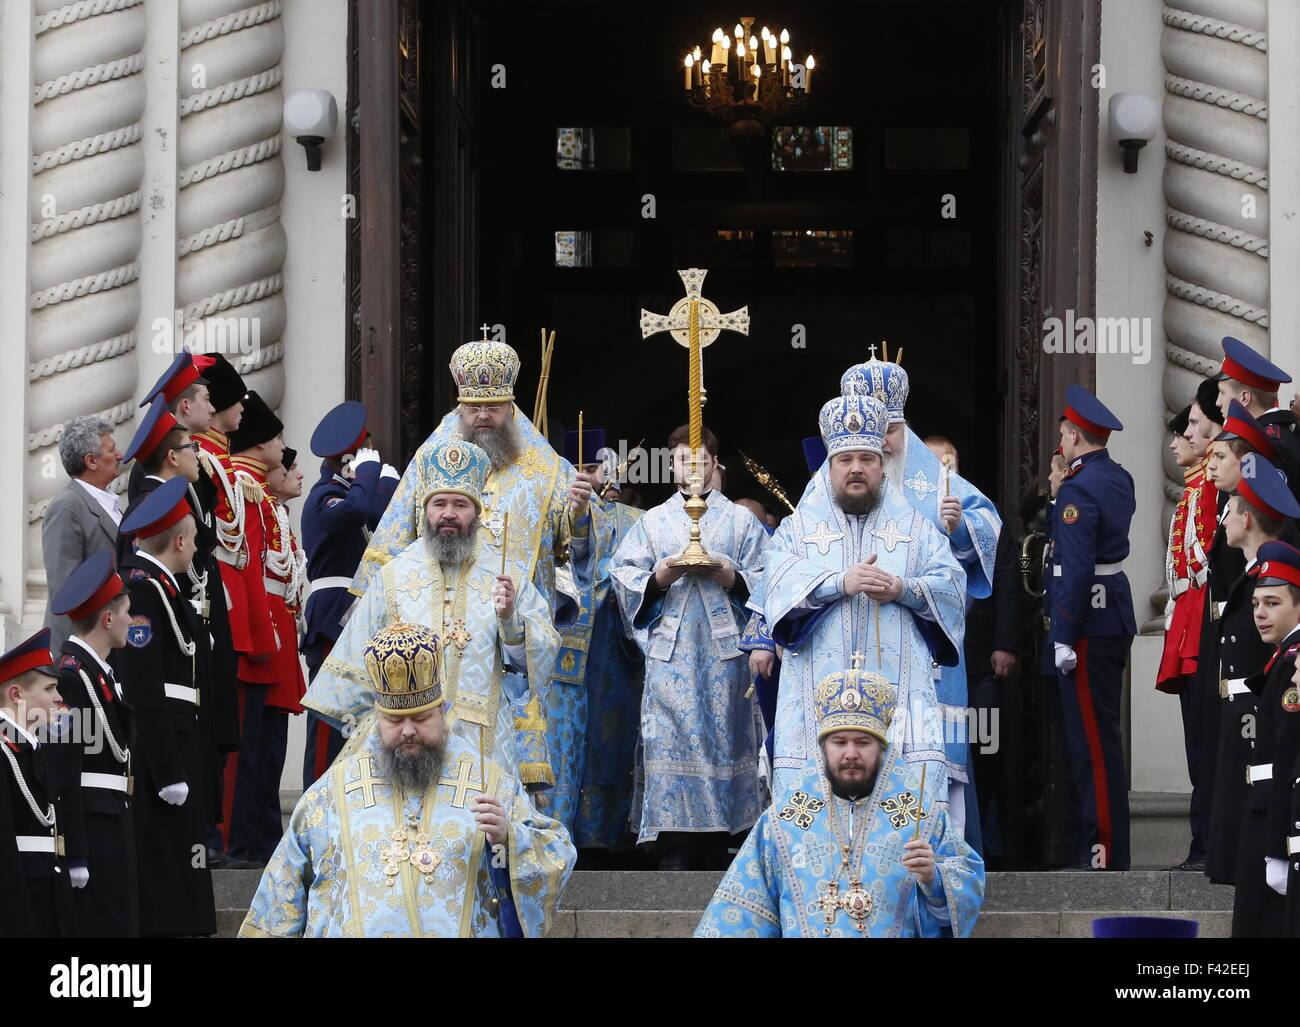 ROSTOV REGION, RUSSIA. OCTOBER 14, 2015. A religios procession outside the Ascension Cathedral in Novocherkassk. - Stock Image